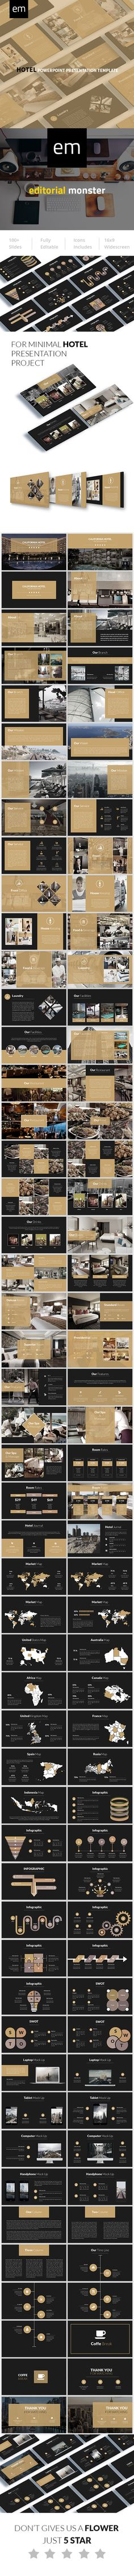 Buy Hotel Keynote Presentation Template by EditorialMonster on GraphicRiver. Hotel Keynote Presentation Template is a hotel and home stay keynote template, come with flat design, clean, classic,. Professional Powerpoint Templates, Powerpoint Template Free, Business Powerpoint Templates, Creative Powerpoint, Powerpoint Presentation Templates, Keynote Template, Powerpoint Designs, Powerpoint Presentations, Presentation Slides